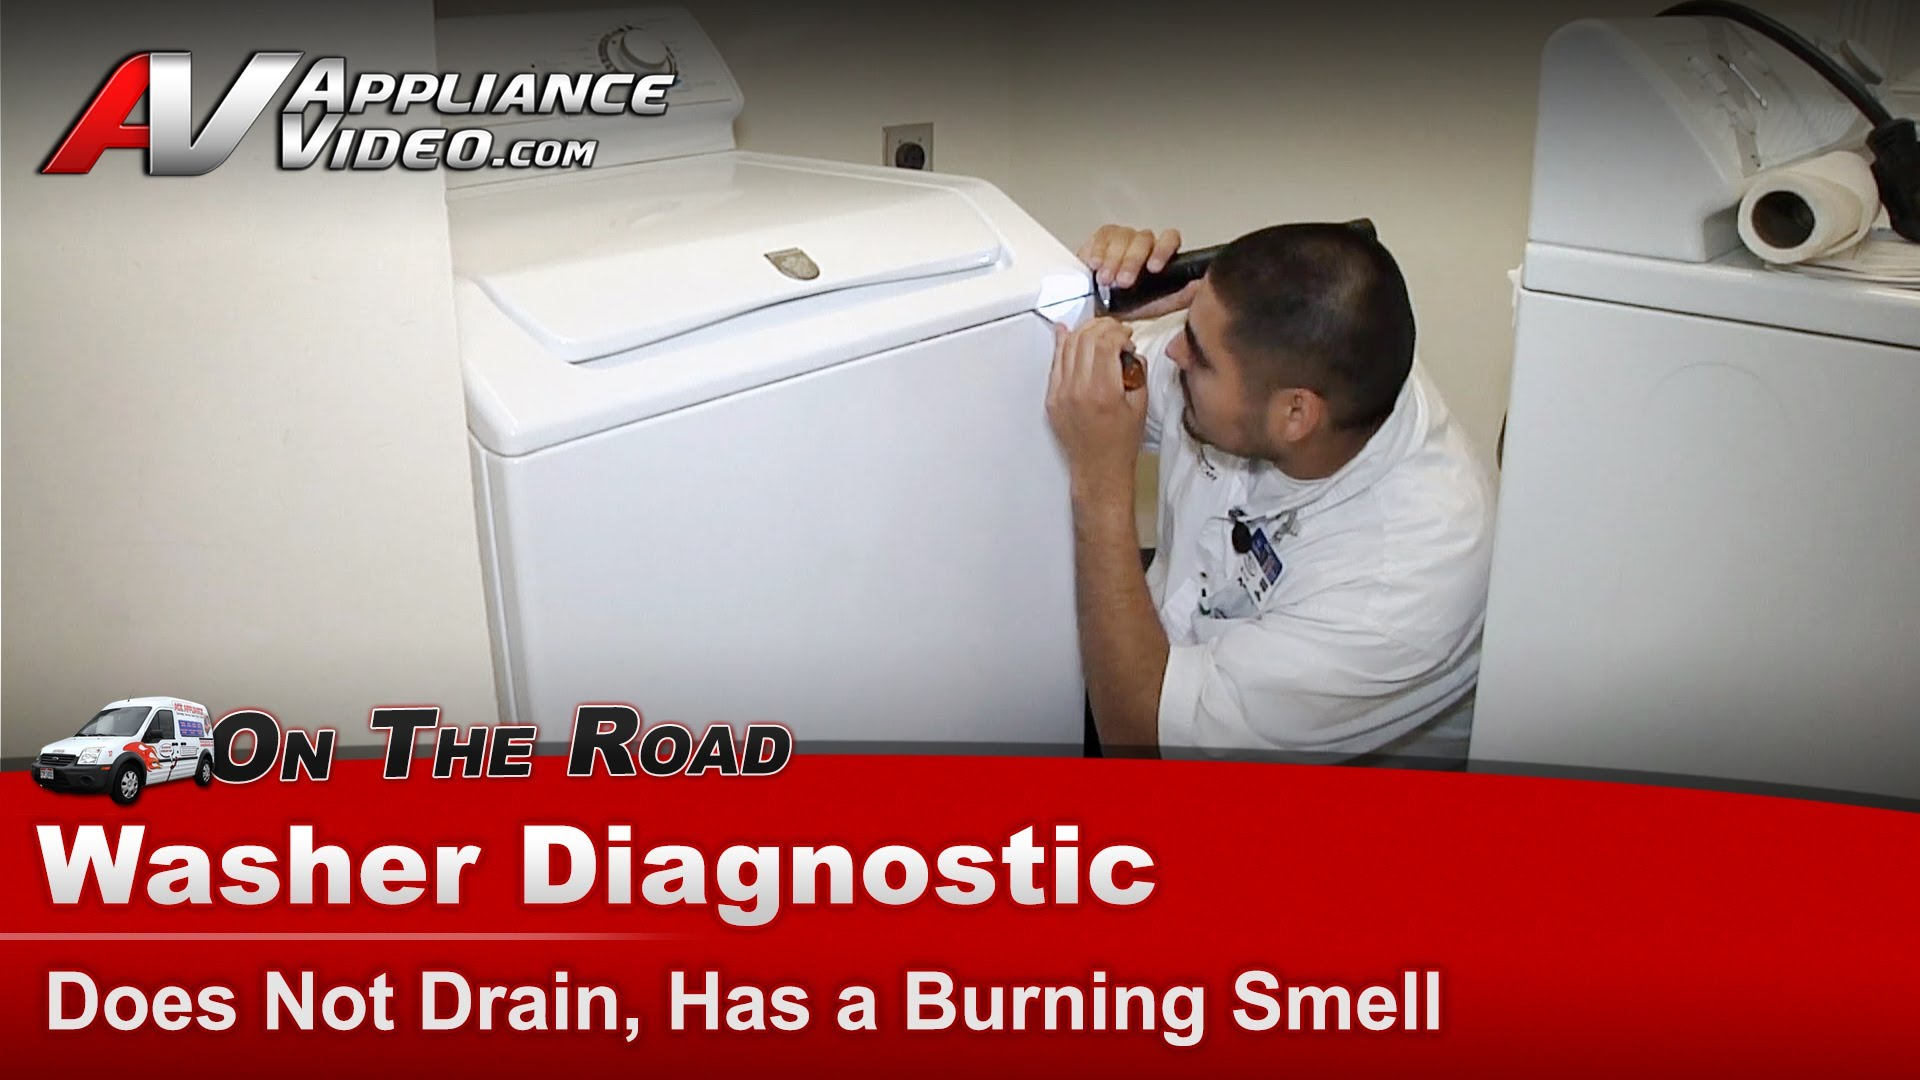 Maytag Mav7600aww Washer Diagnostic Does Not Drain Has